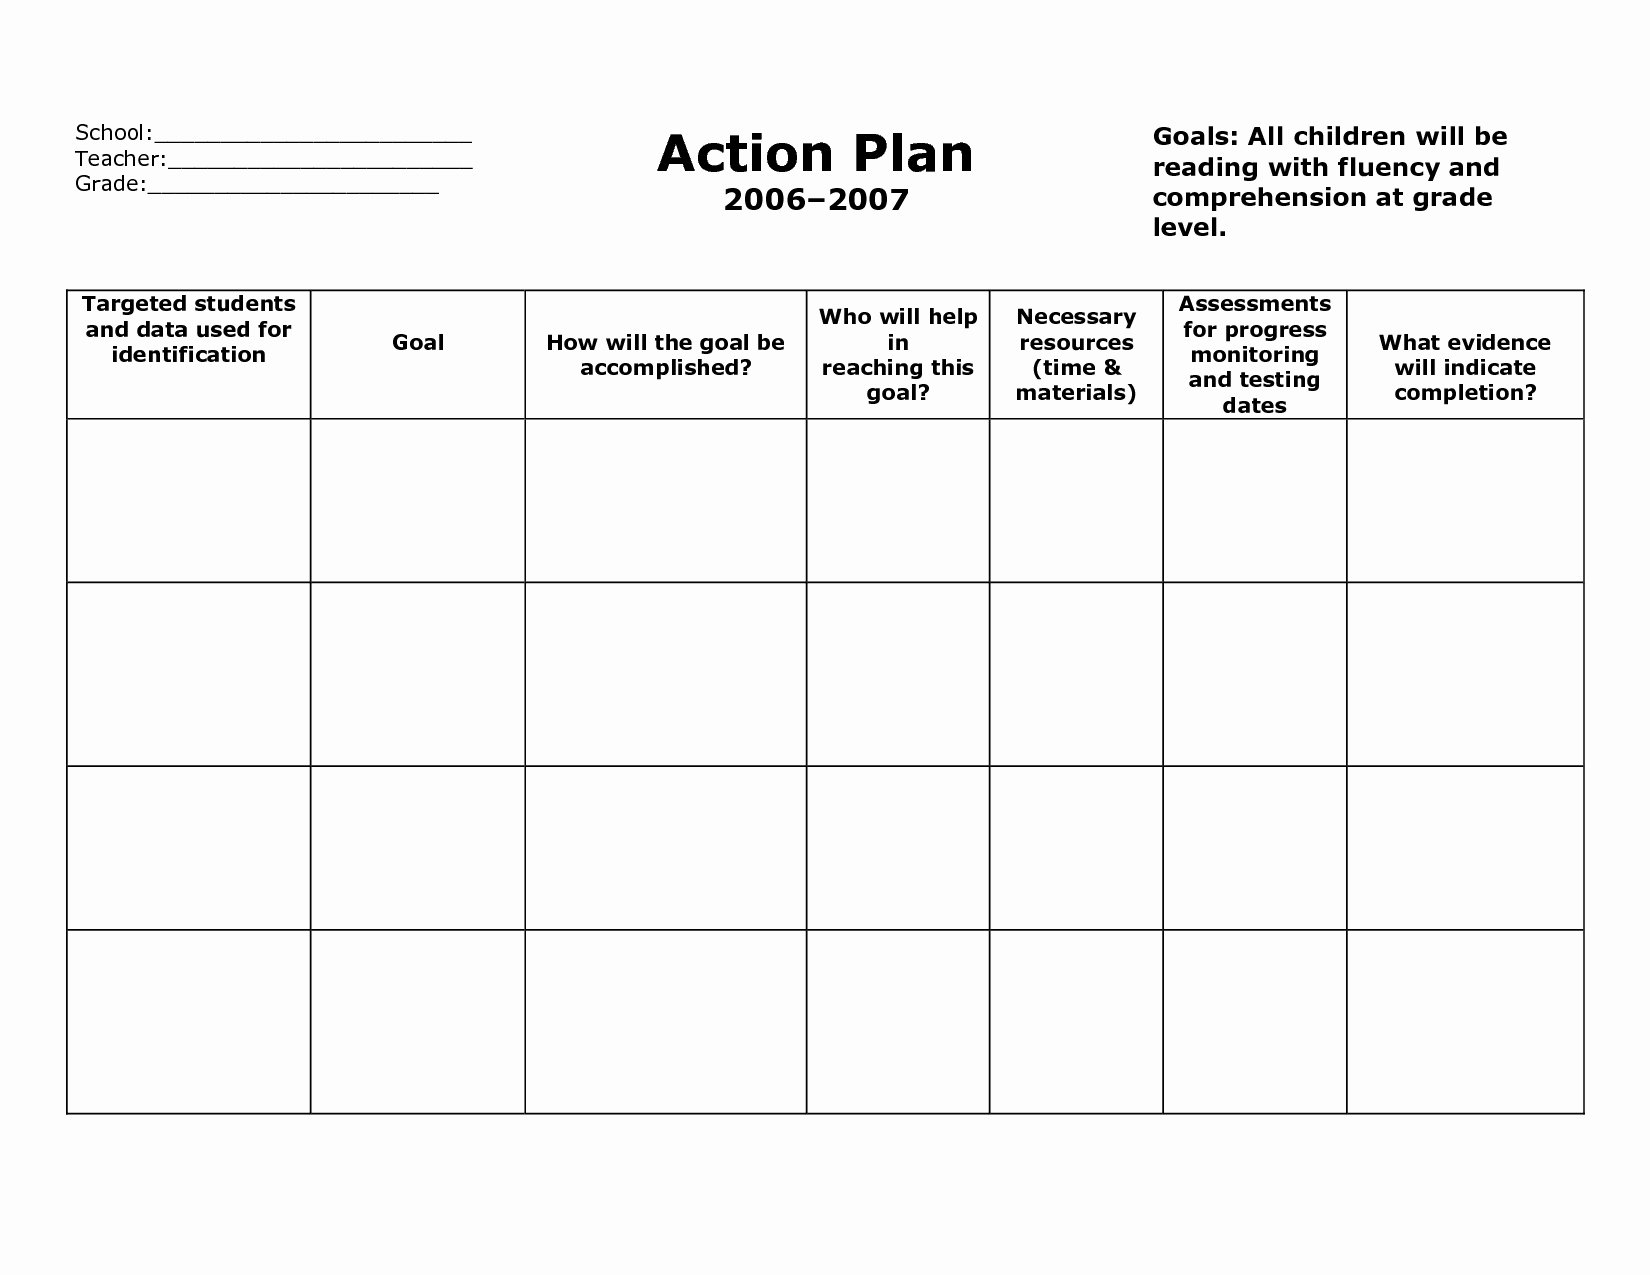 Smart Action Plan Template Best Of Action Plan Template Action Plan format V5fclyv5